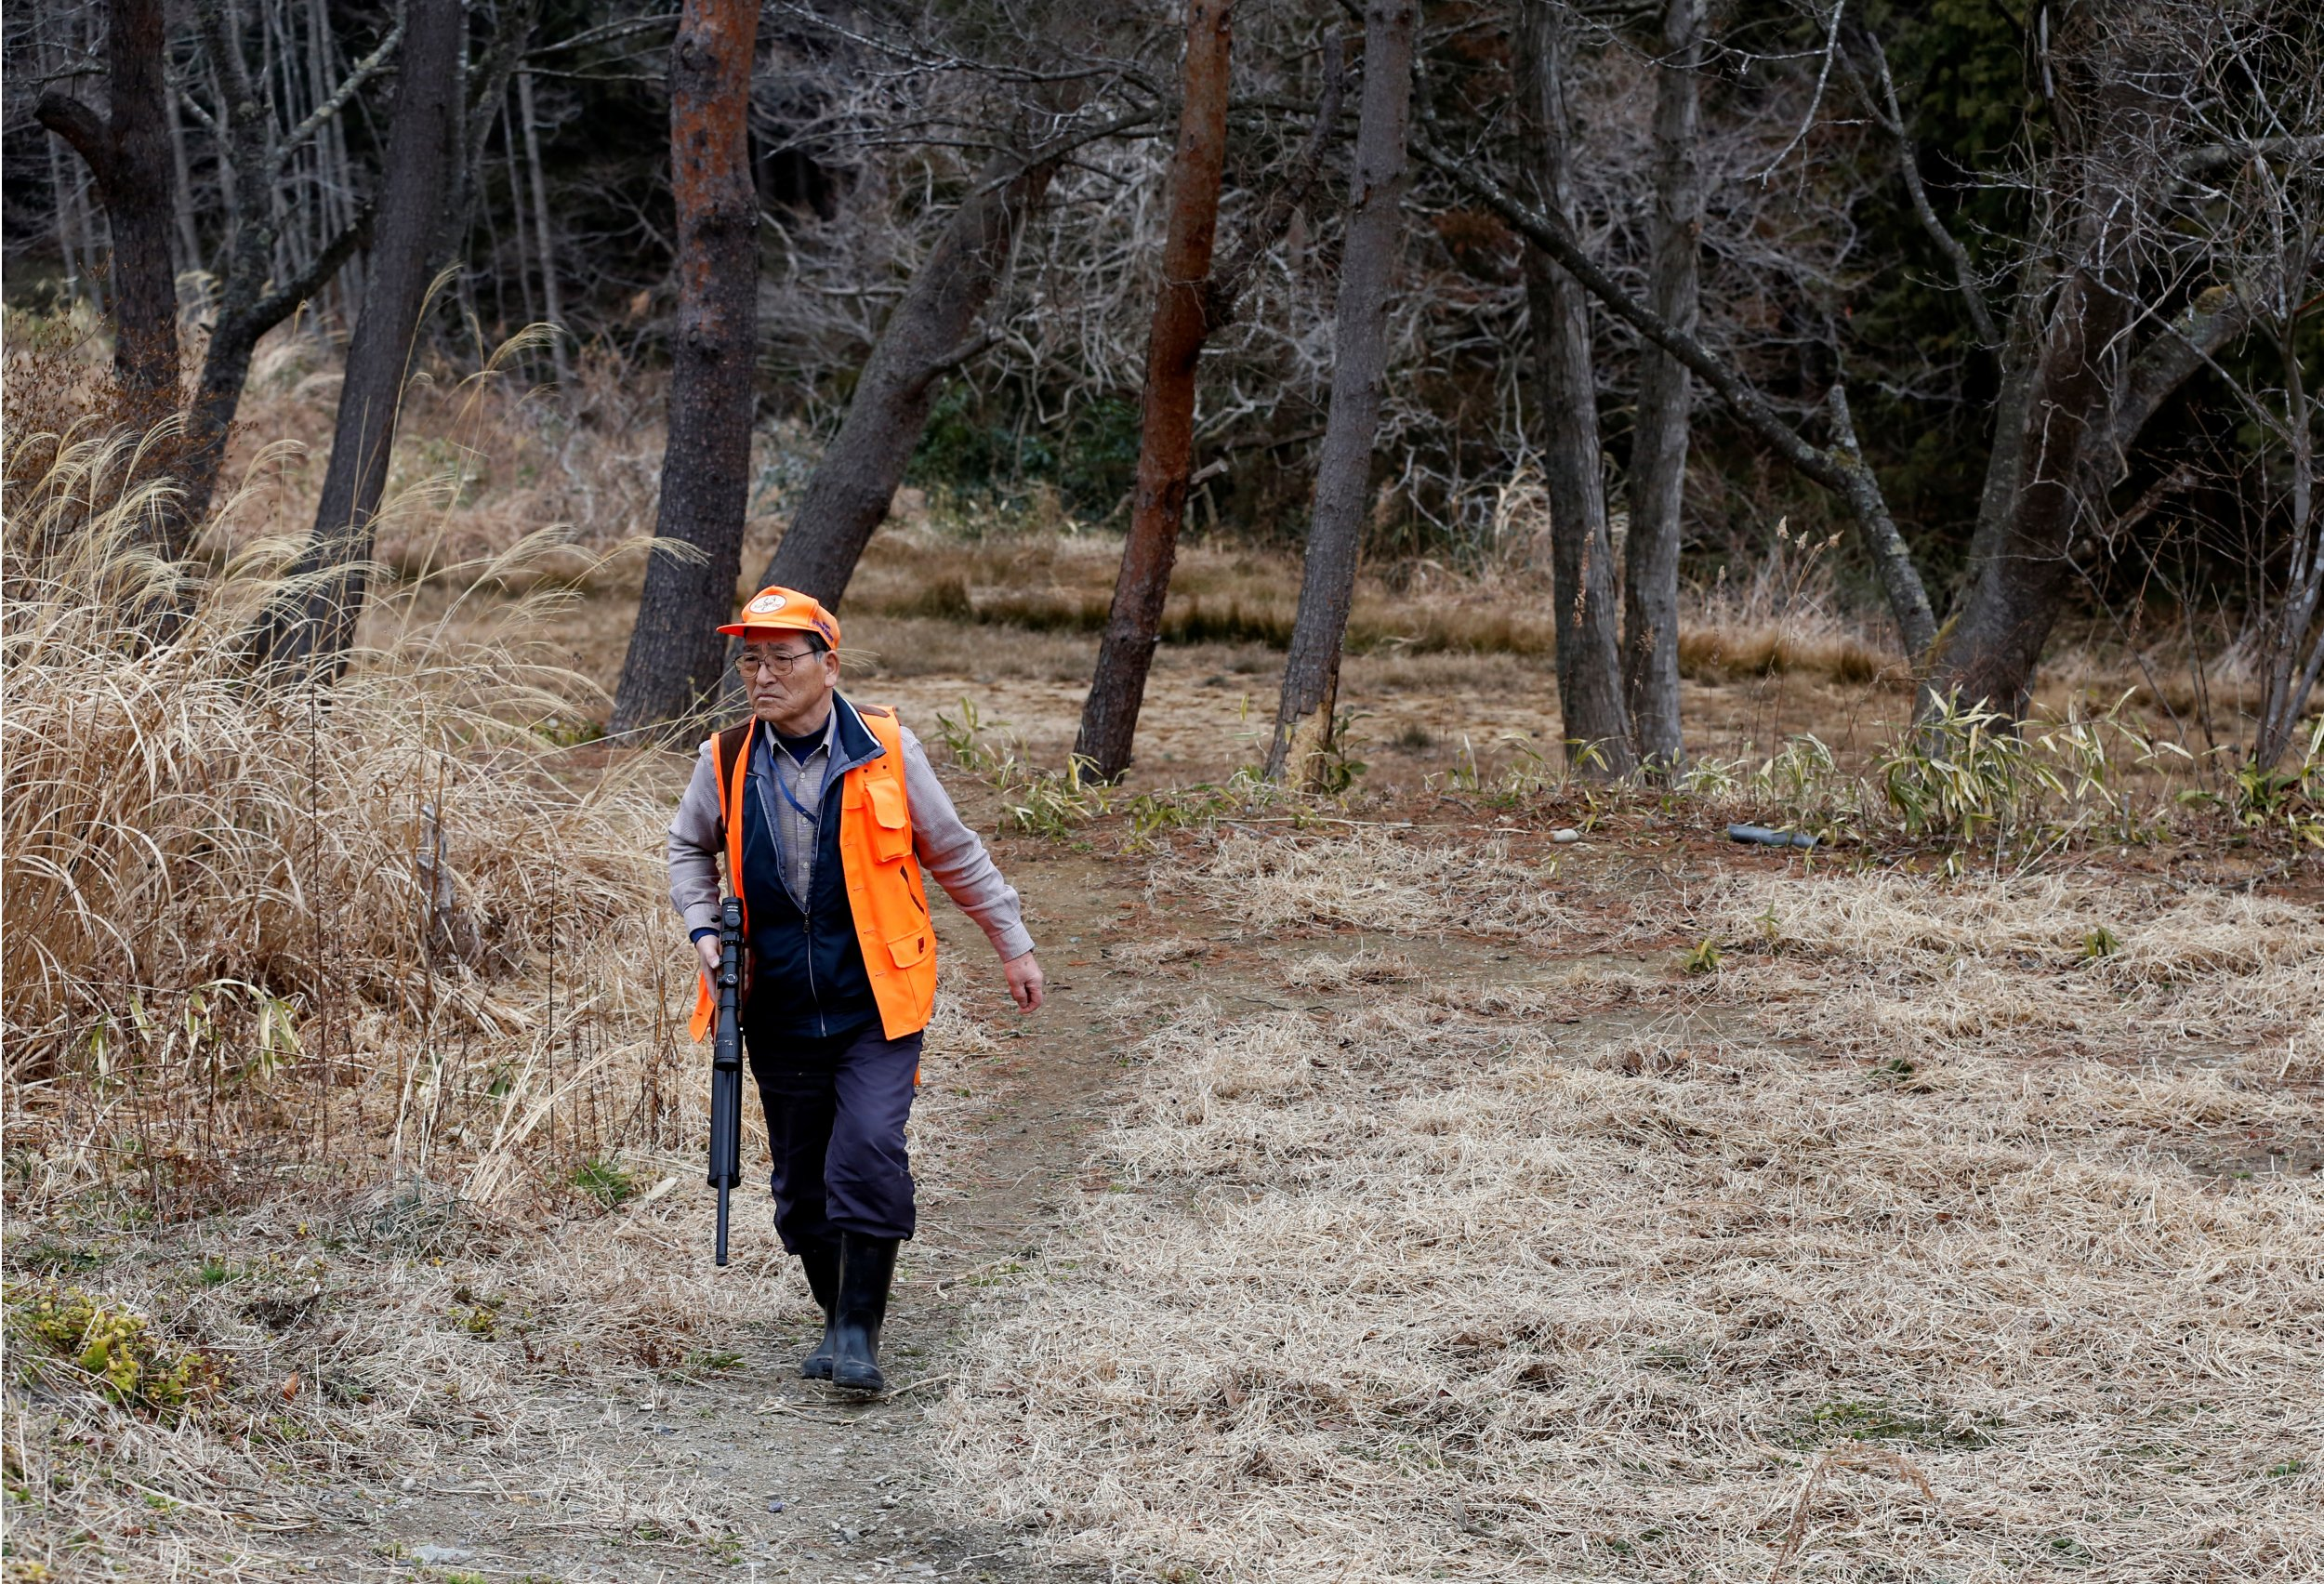 Man hunts wild boars in Fukushima